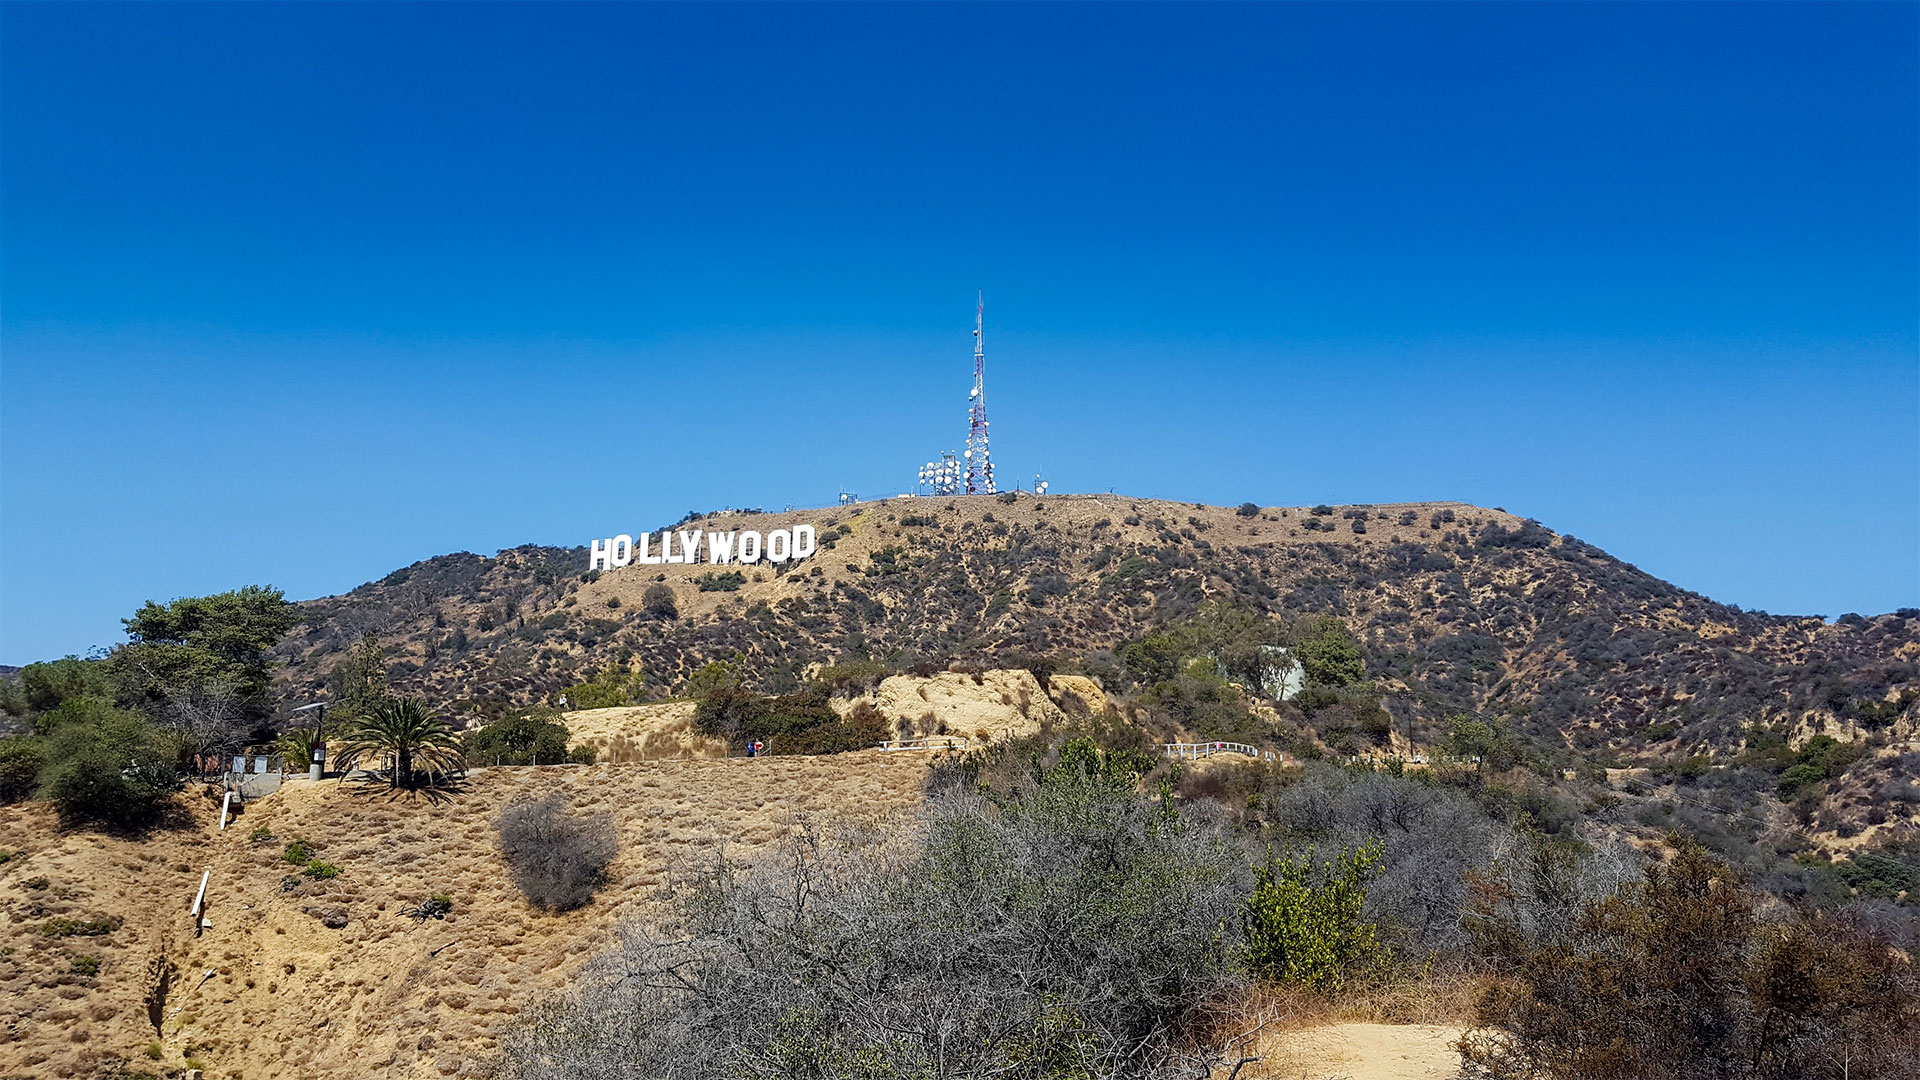 amerika hollywood